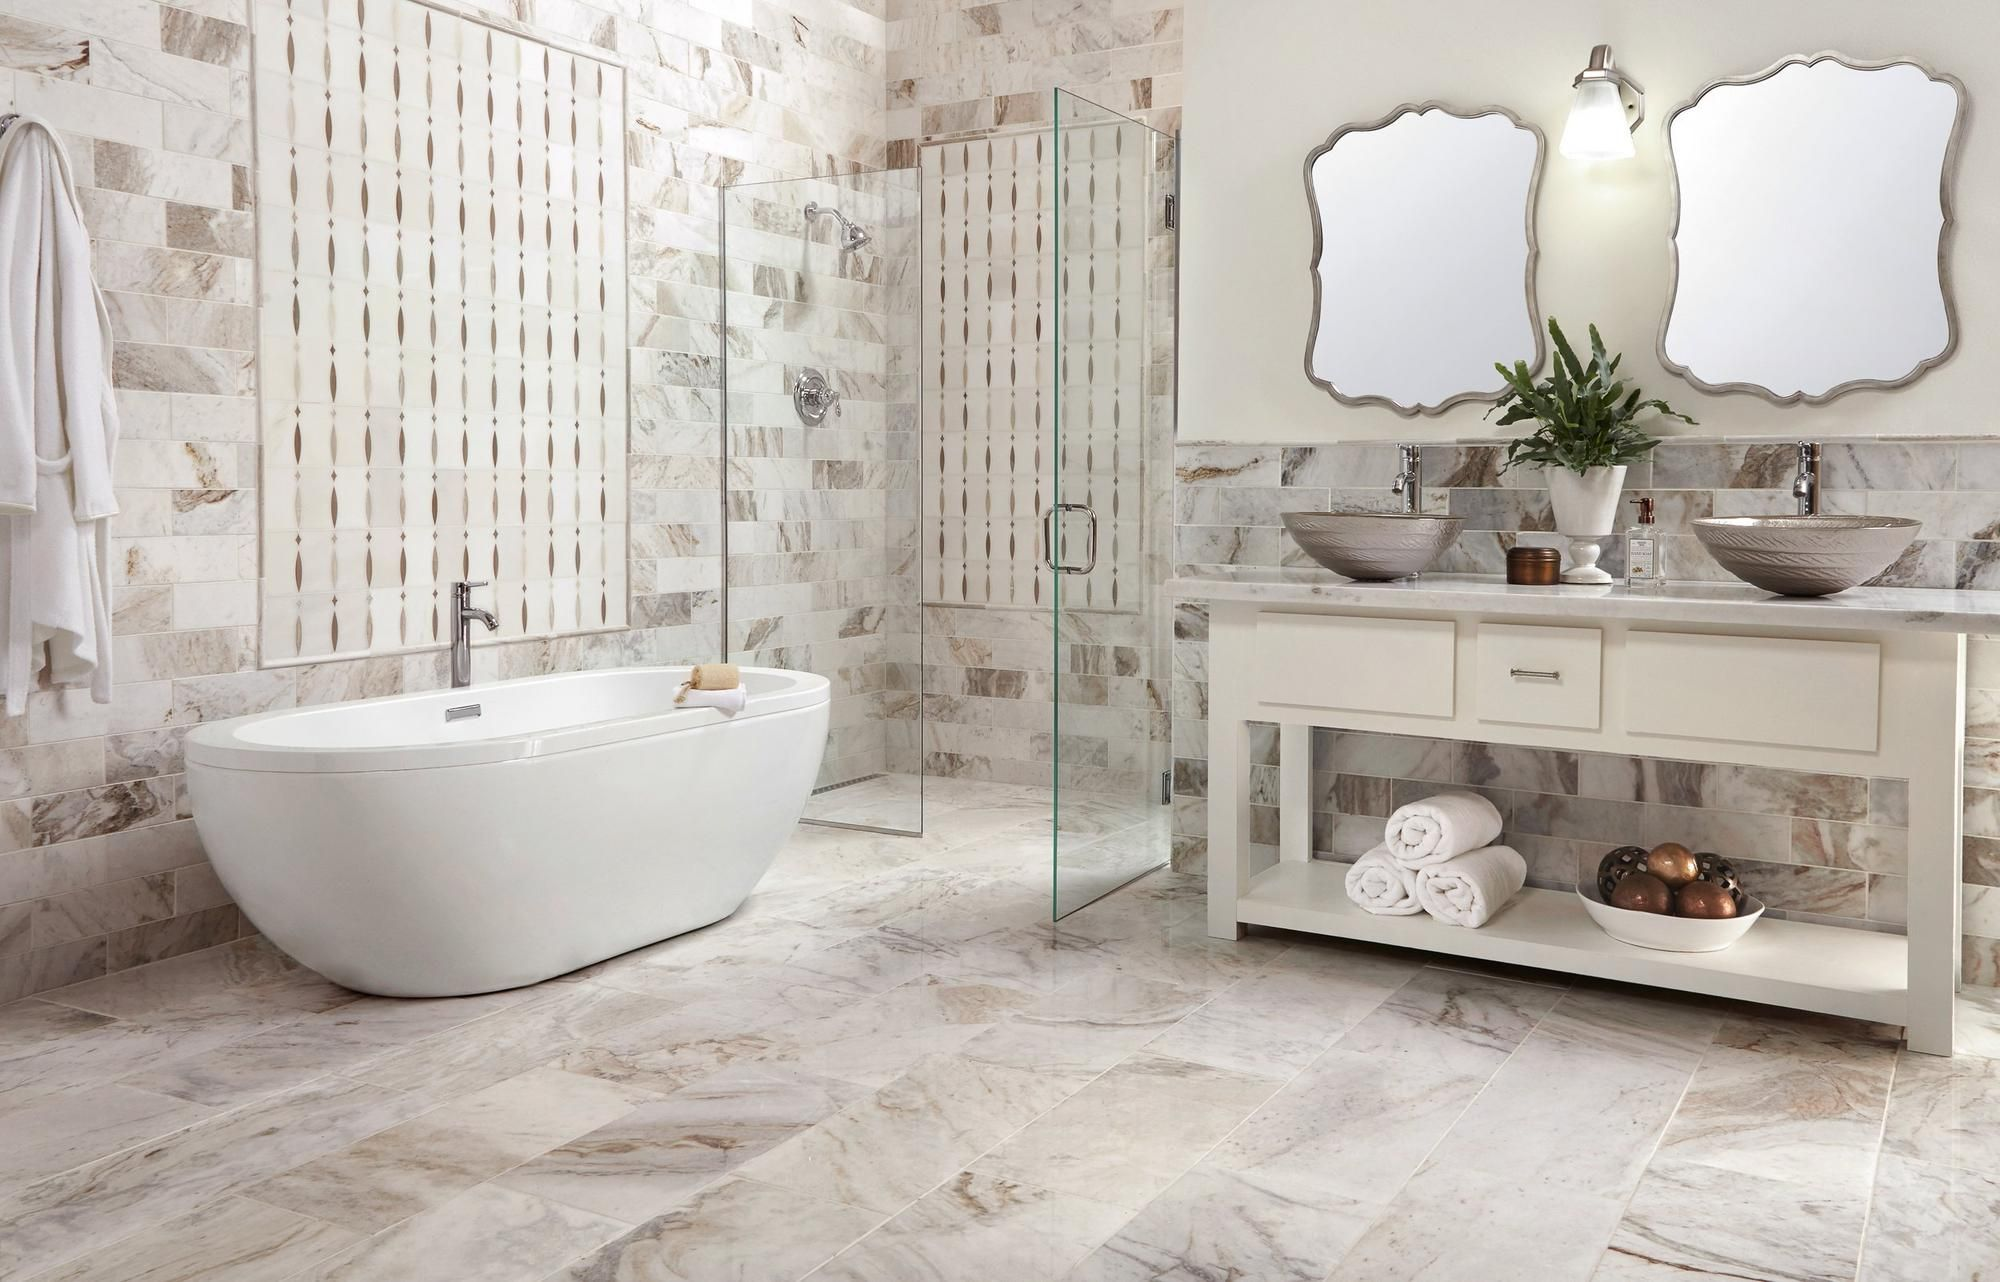 Pin By Karen Crum On Home In 2020 Floor Decor Bathroom Design Polished Marble Tiles